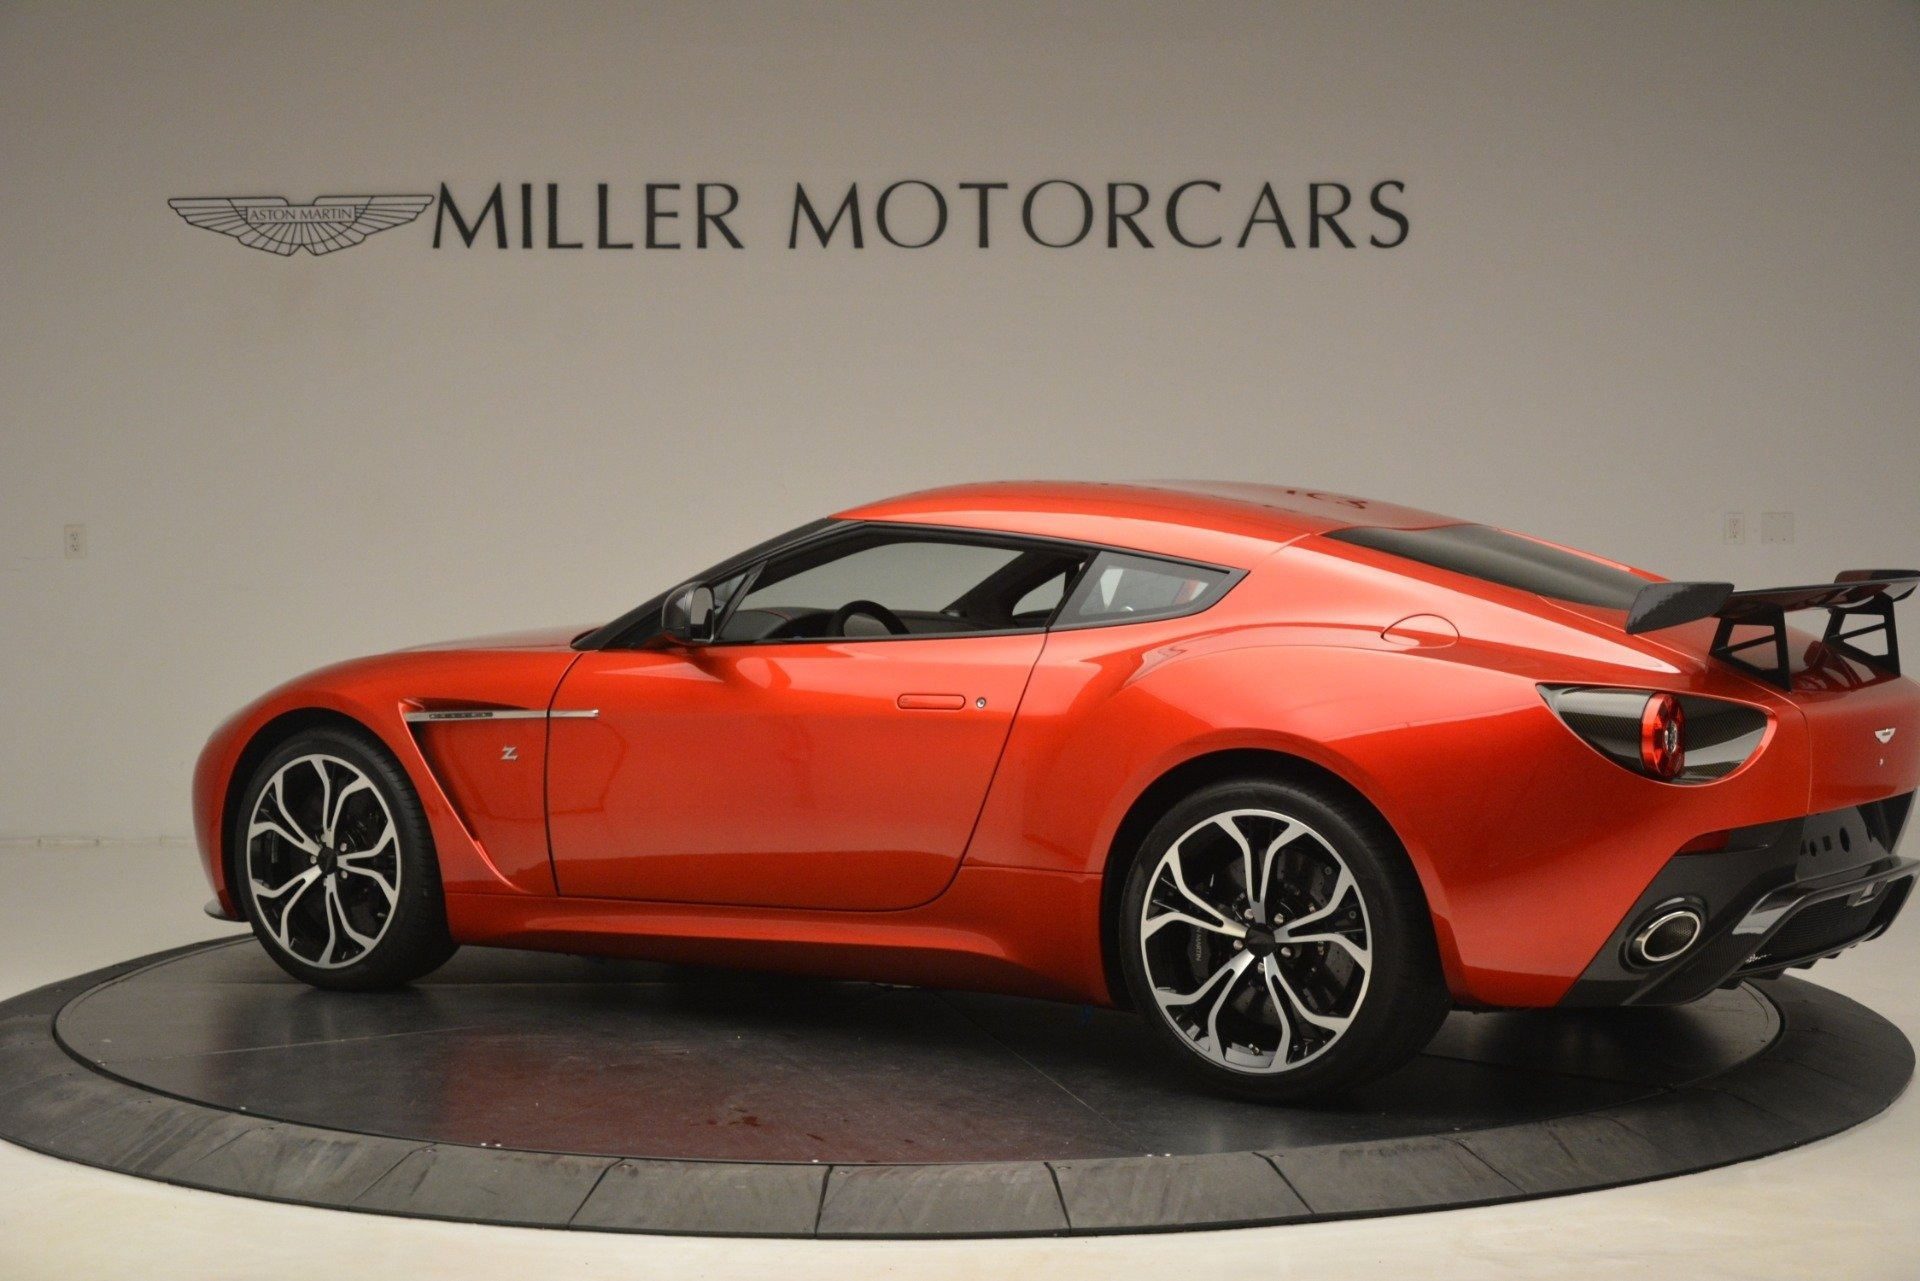 Used 2013 Aston Martin V12 Zagato Coupe For Sale In Greenwich, CT 3181_p3